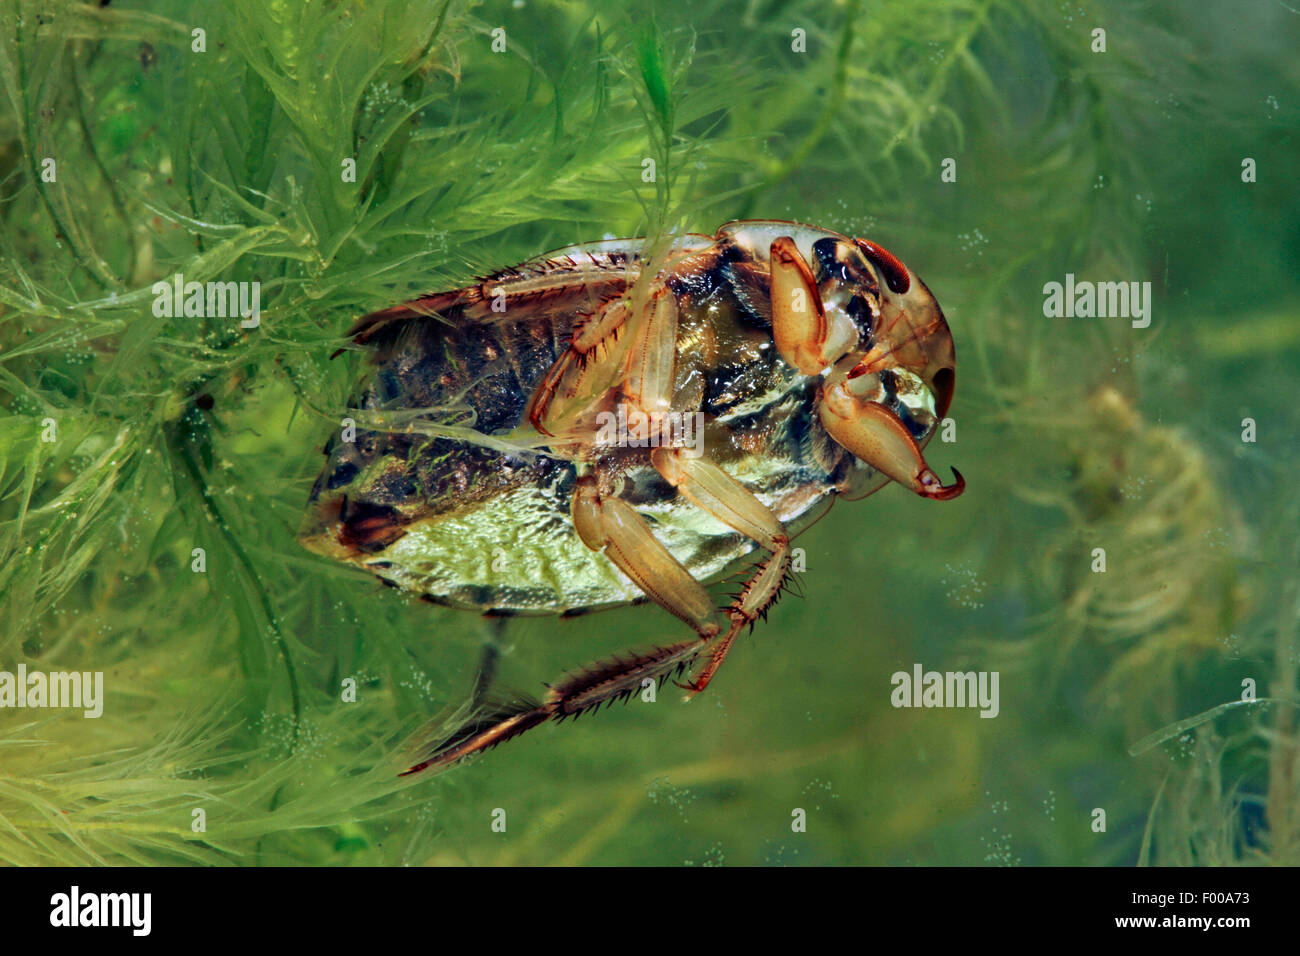 Saucer bug, Creeping water bug (Ilyocoris cimicoides, Naucoris cimicoides), swimming, from below, Germany - Stock Image